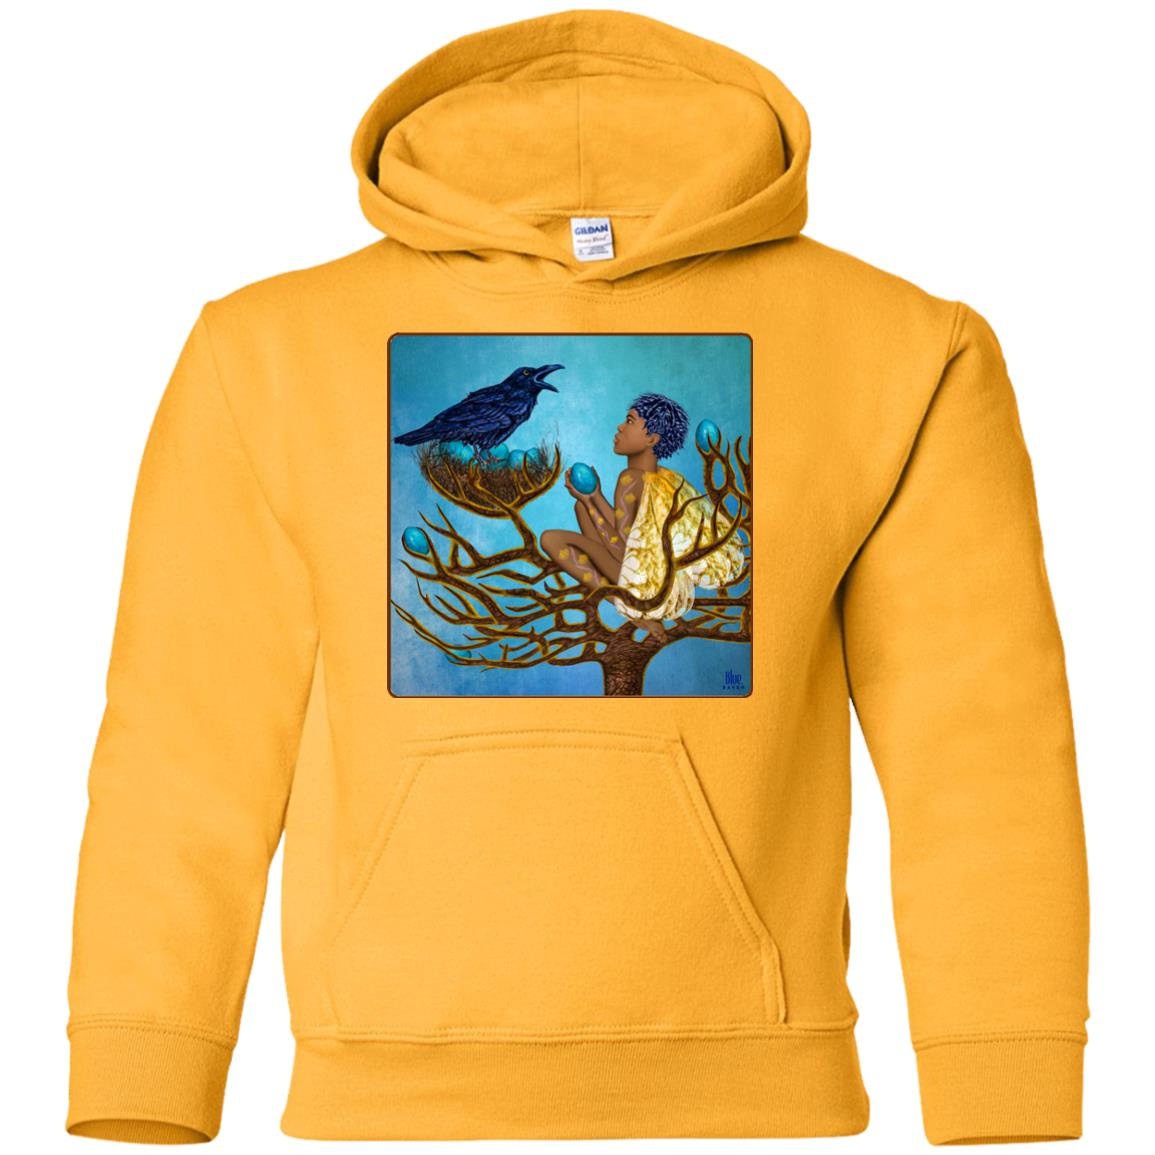 The blue raven's friend - Youth Hoodie